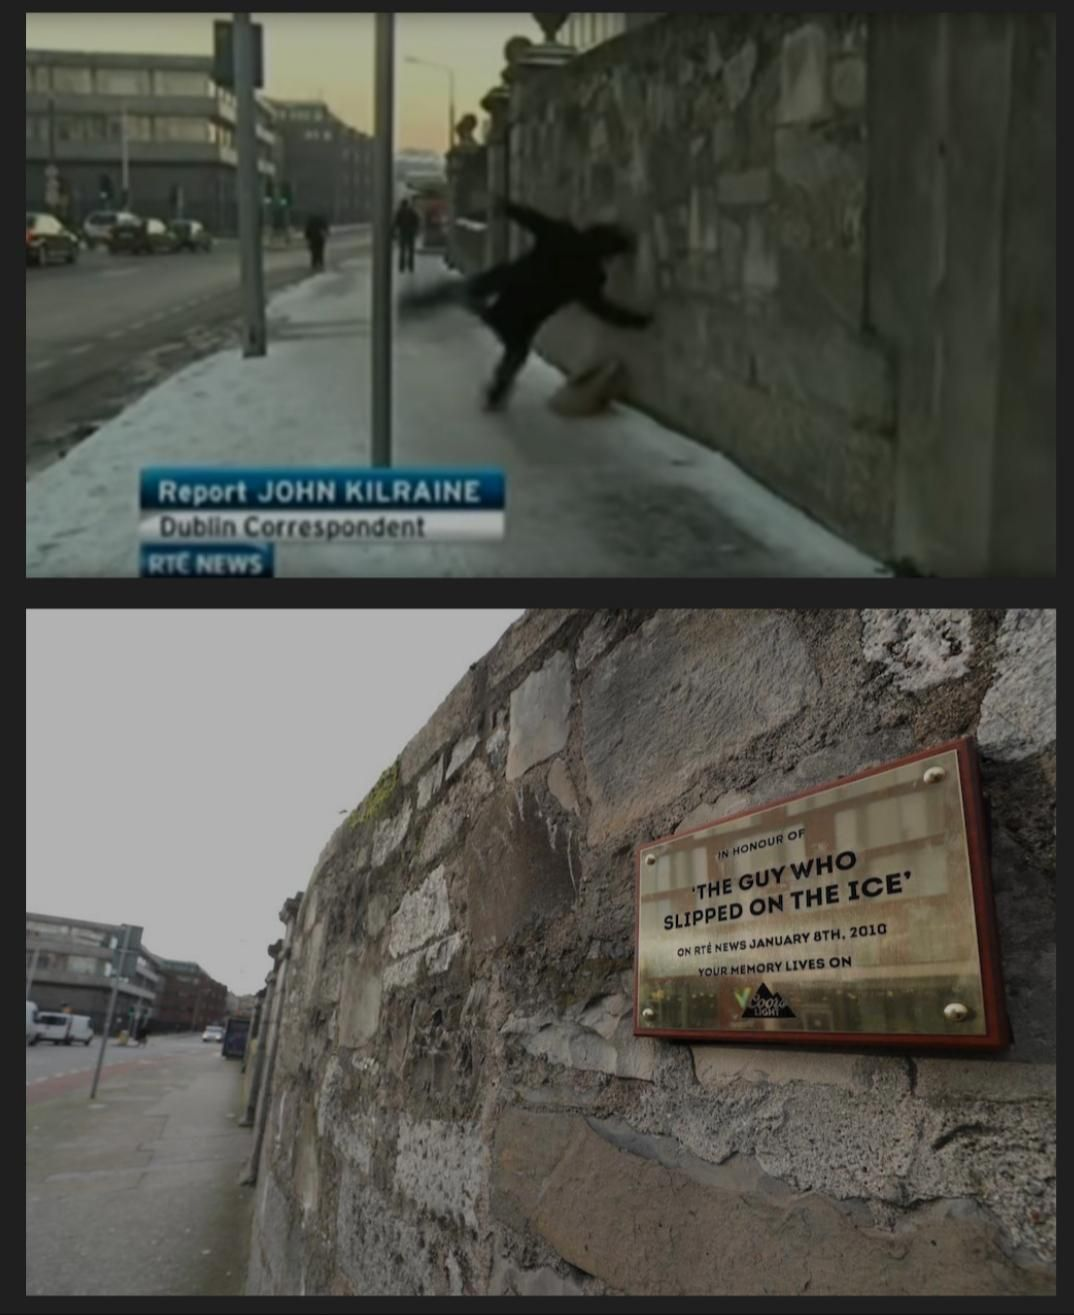 A plaque has been placed to commemorate the man who once slipped on ice on national television in Ireland.